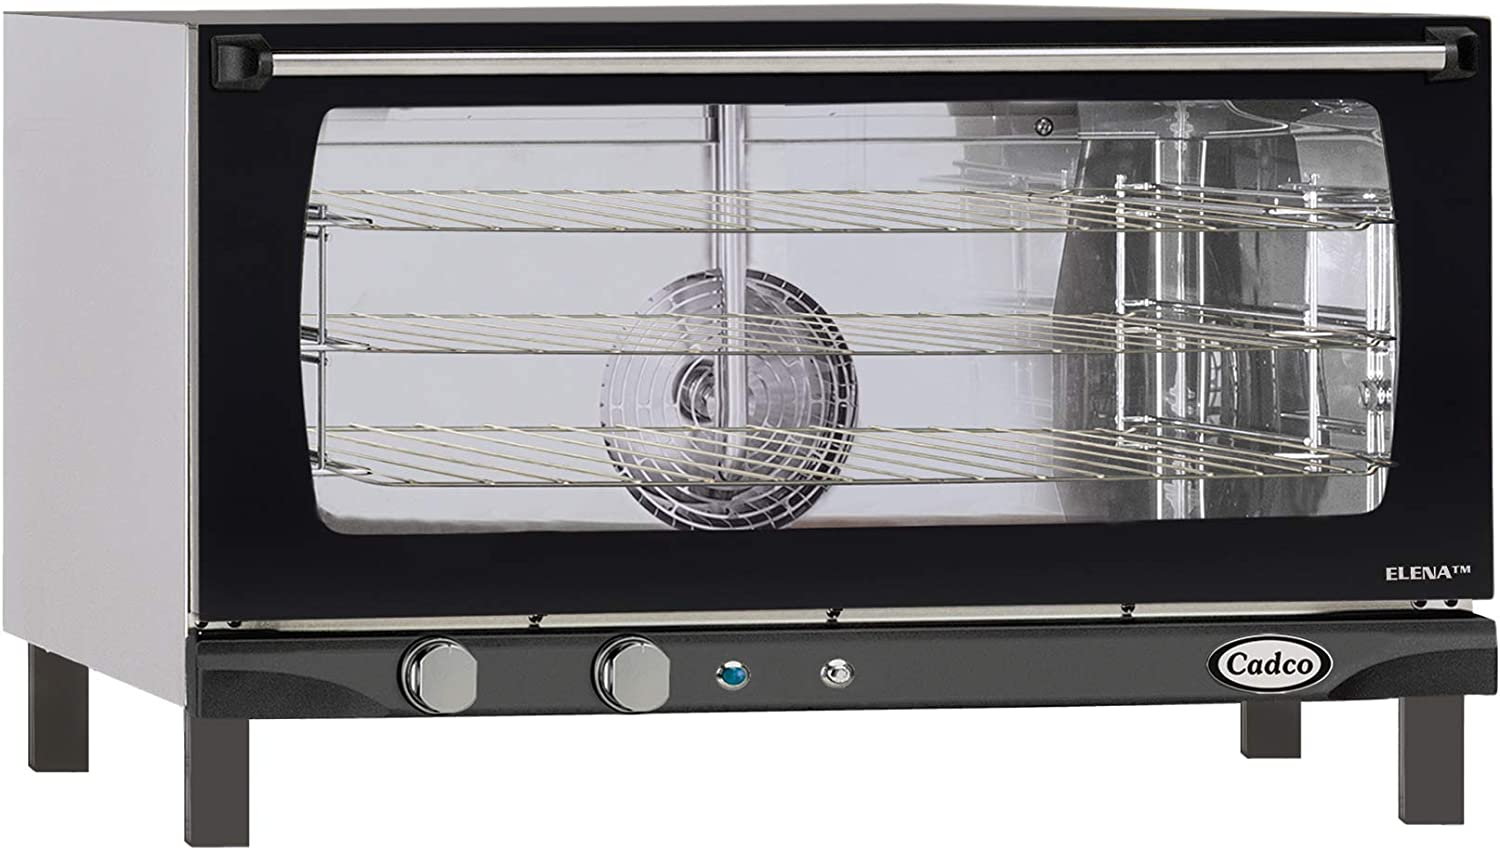 Cadco XAF-183 All items free shipping Full Size Convection Controls Manual Max 54% OFF and with Oven